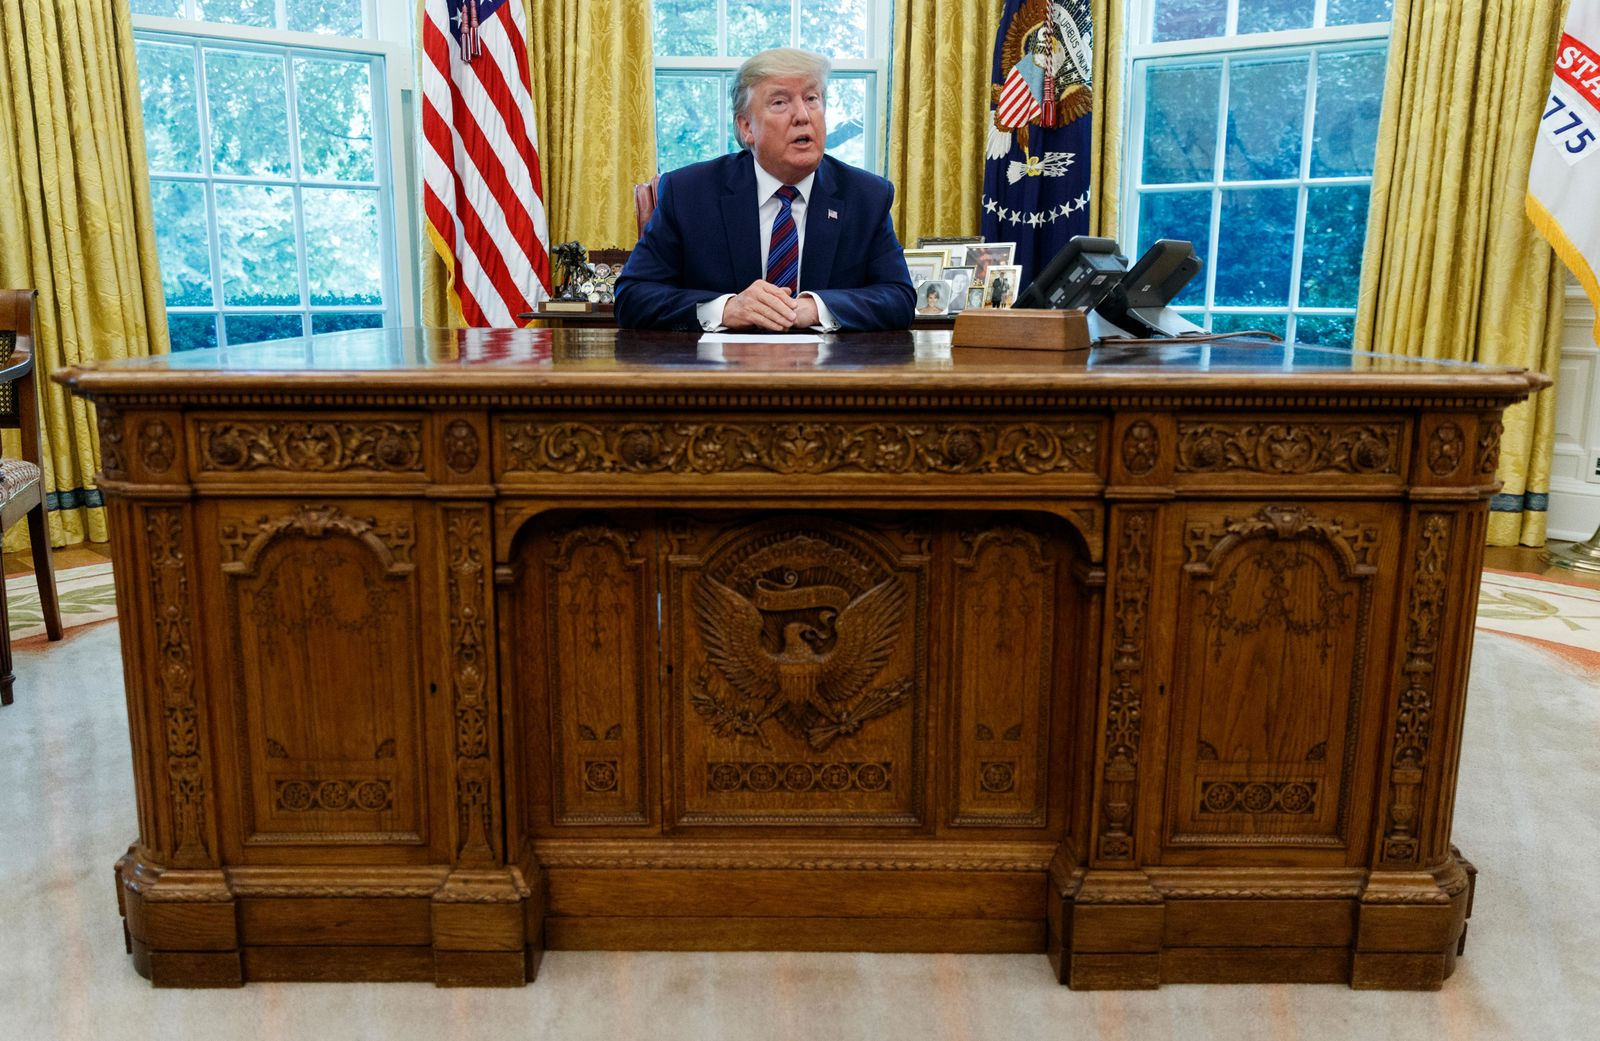 President Donald Trump speaks in the Oval Office of the White House in Washington, Friday, July 26, 2019. Trump announced that Guatemala is signing an agreement to restrict asylum applications to the U.S. from Central America. (AP Photo/Carolyn Kaster)